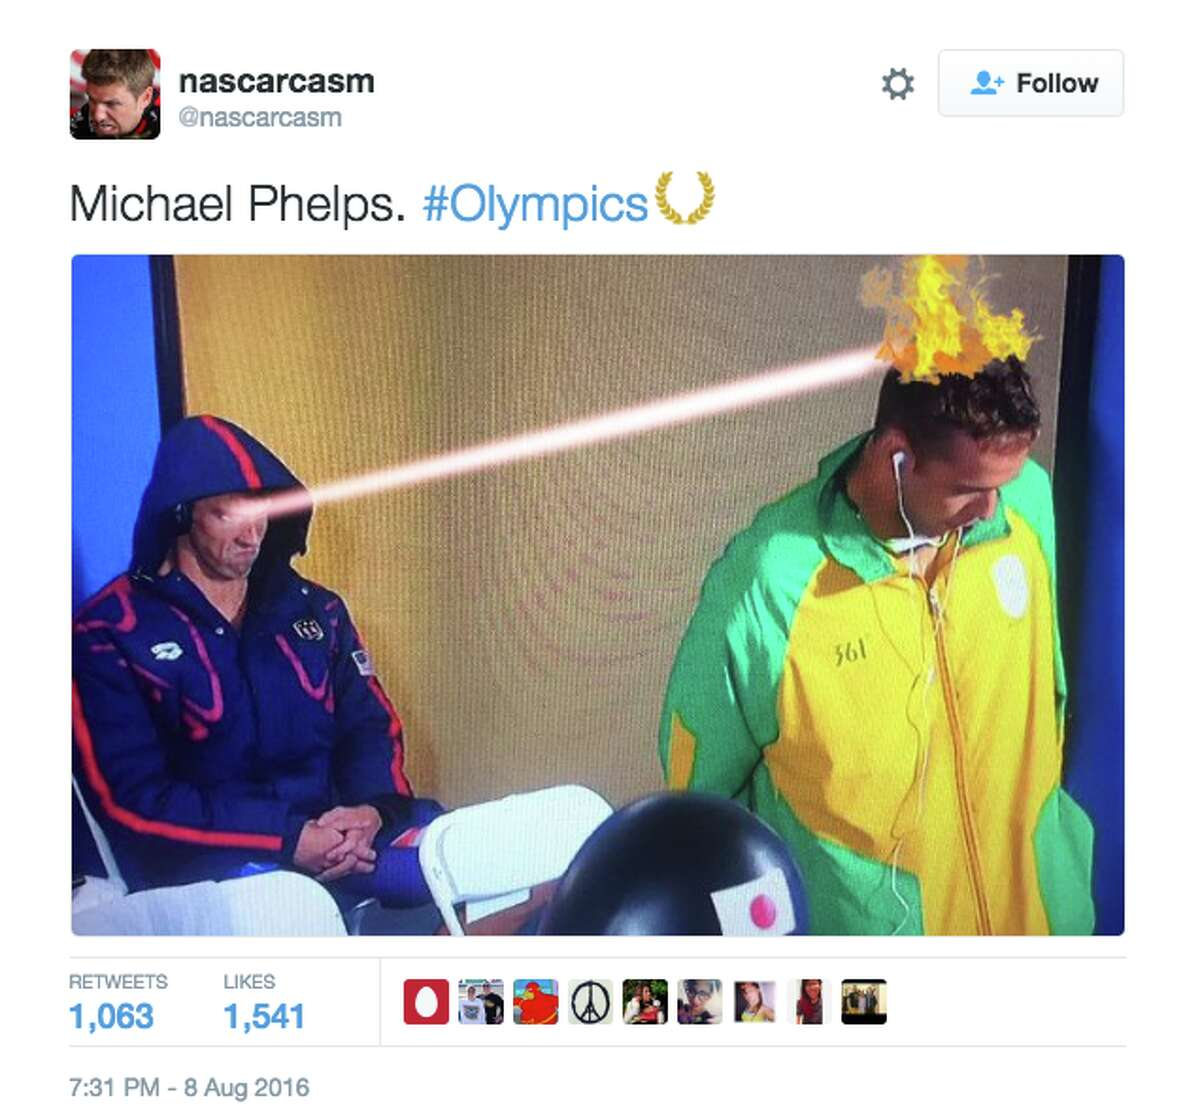 Phelps' tendency to listen to music while wearing his hood up caught the attention of the internet at this year's Olympics, who had fun with this photo of Phelps' intense game-face and fellow competitor, Chad le Clos.